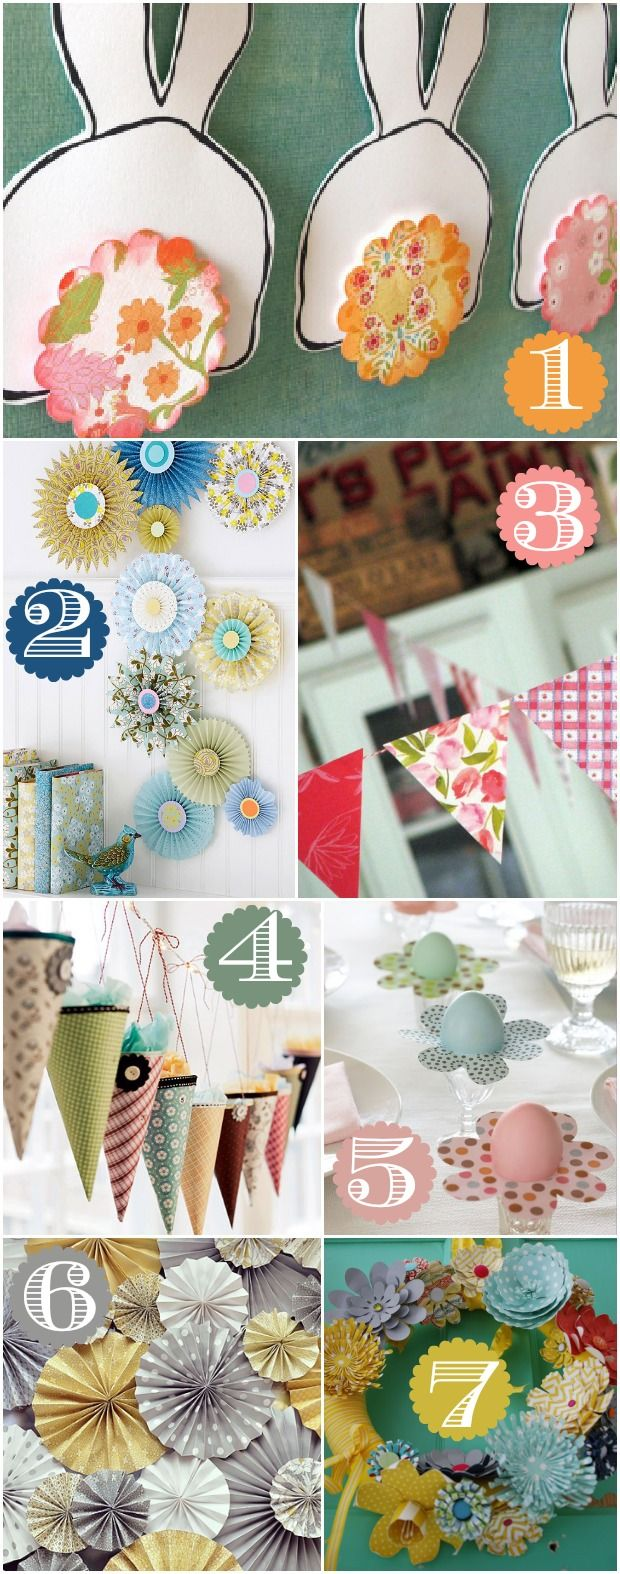 How to scrapbook at home - 42 Ways To Decorate With Scrapbook Paper